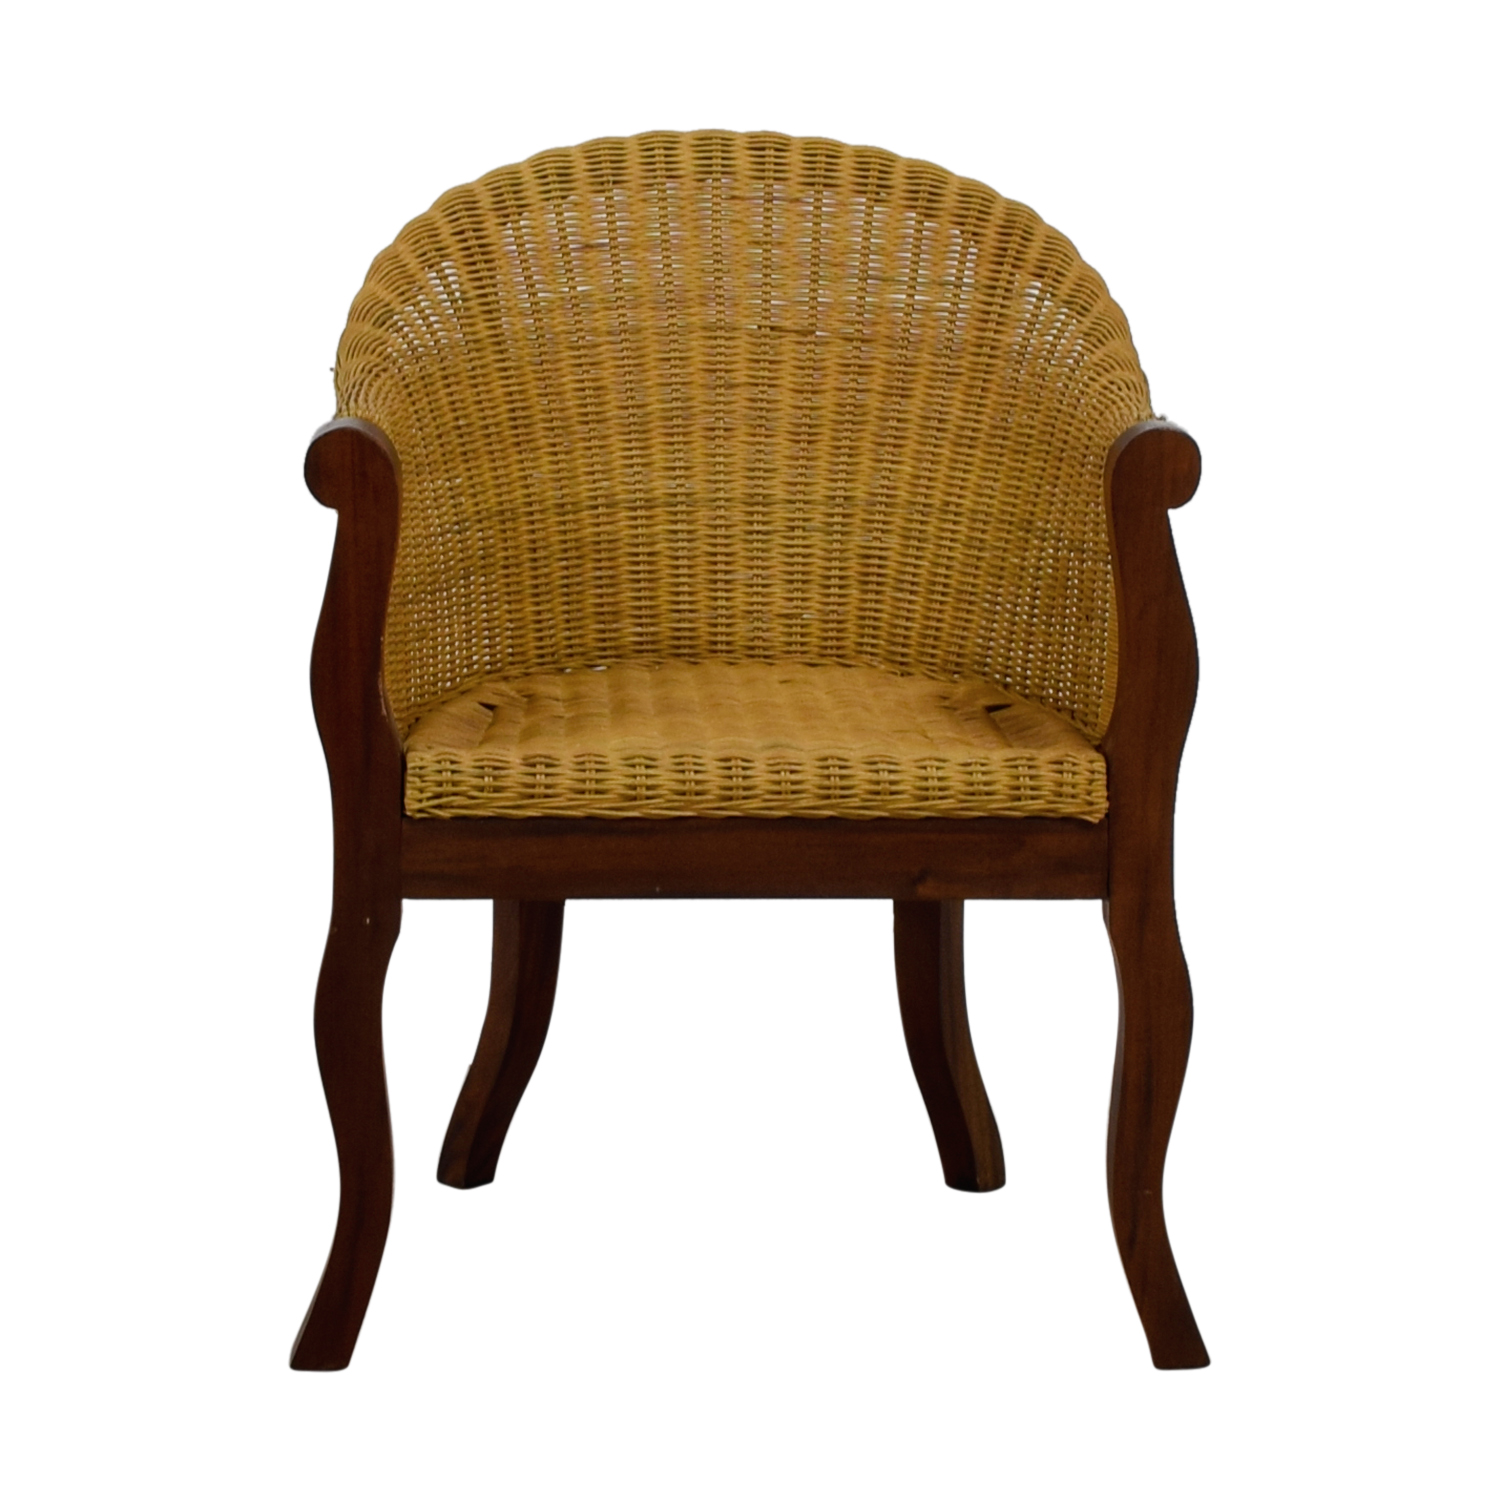 Wicker and Wood Accent Chair used